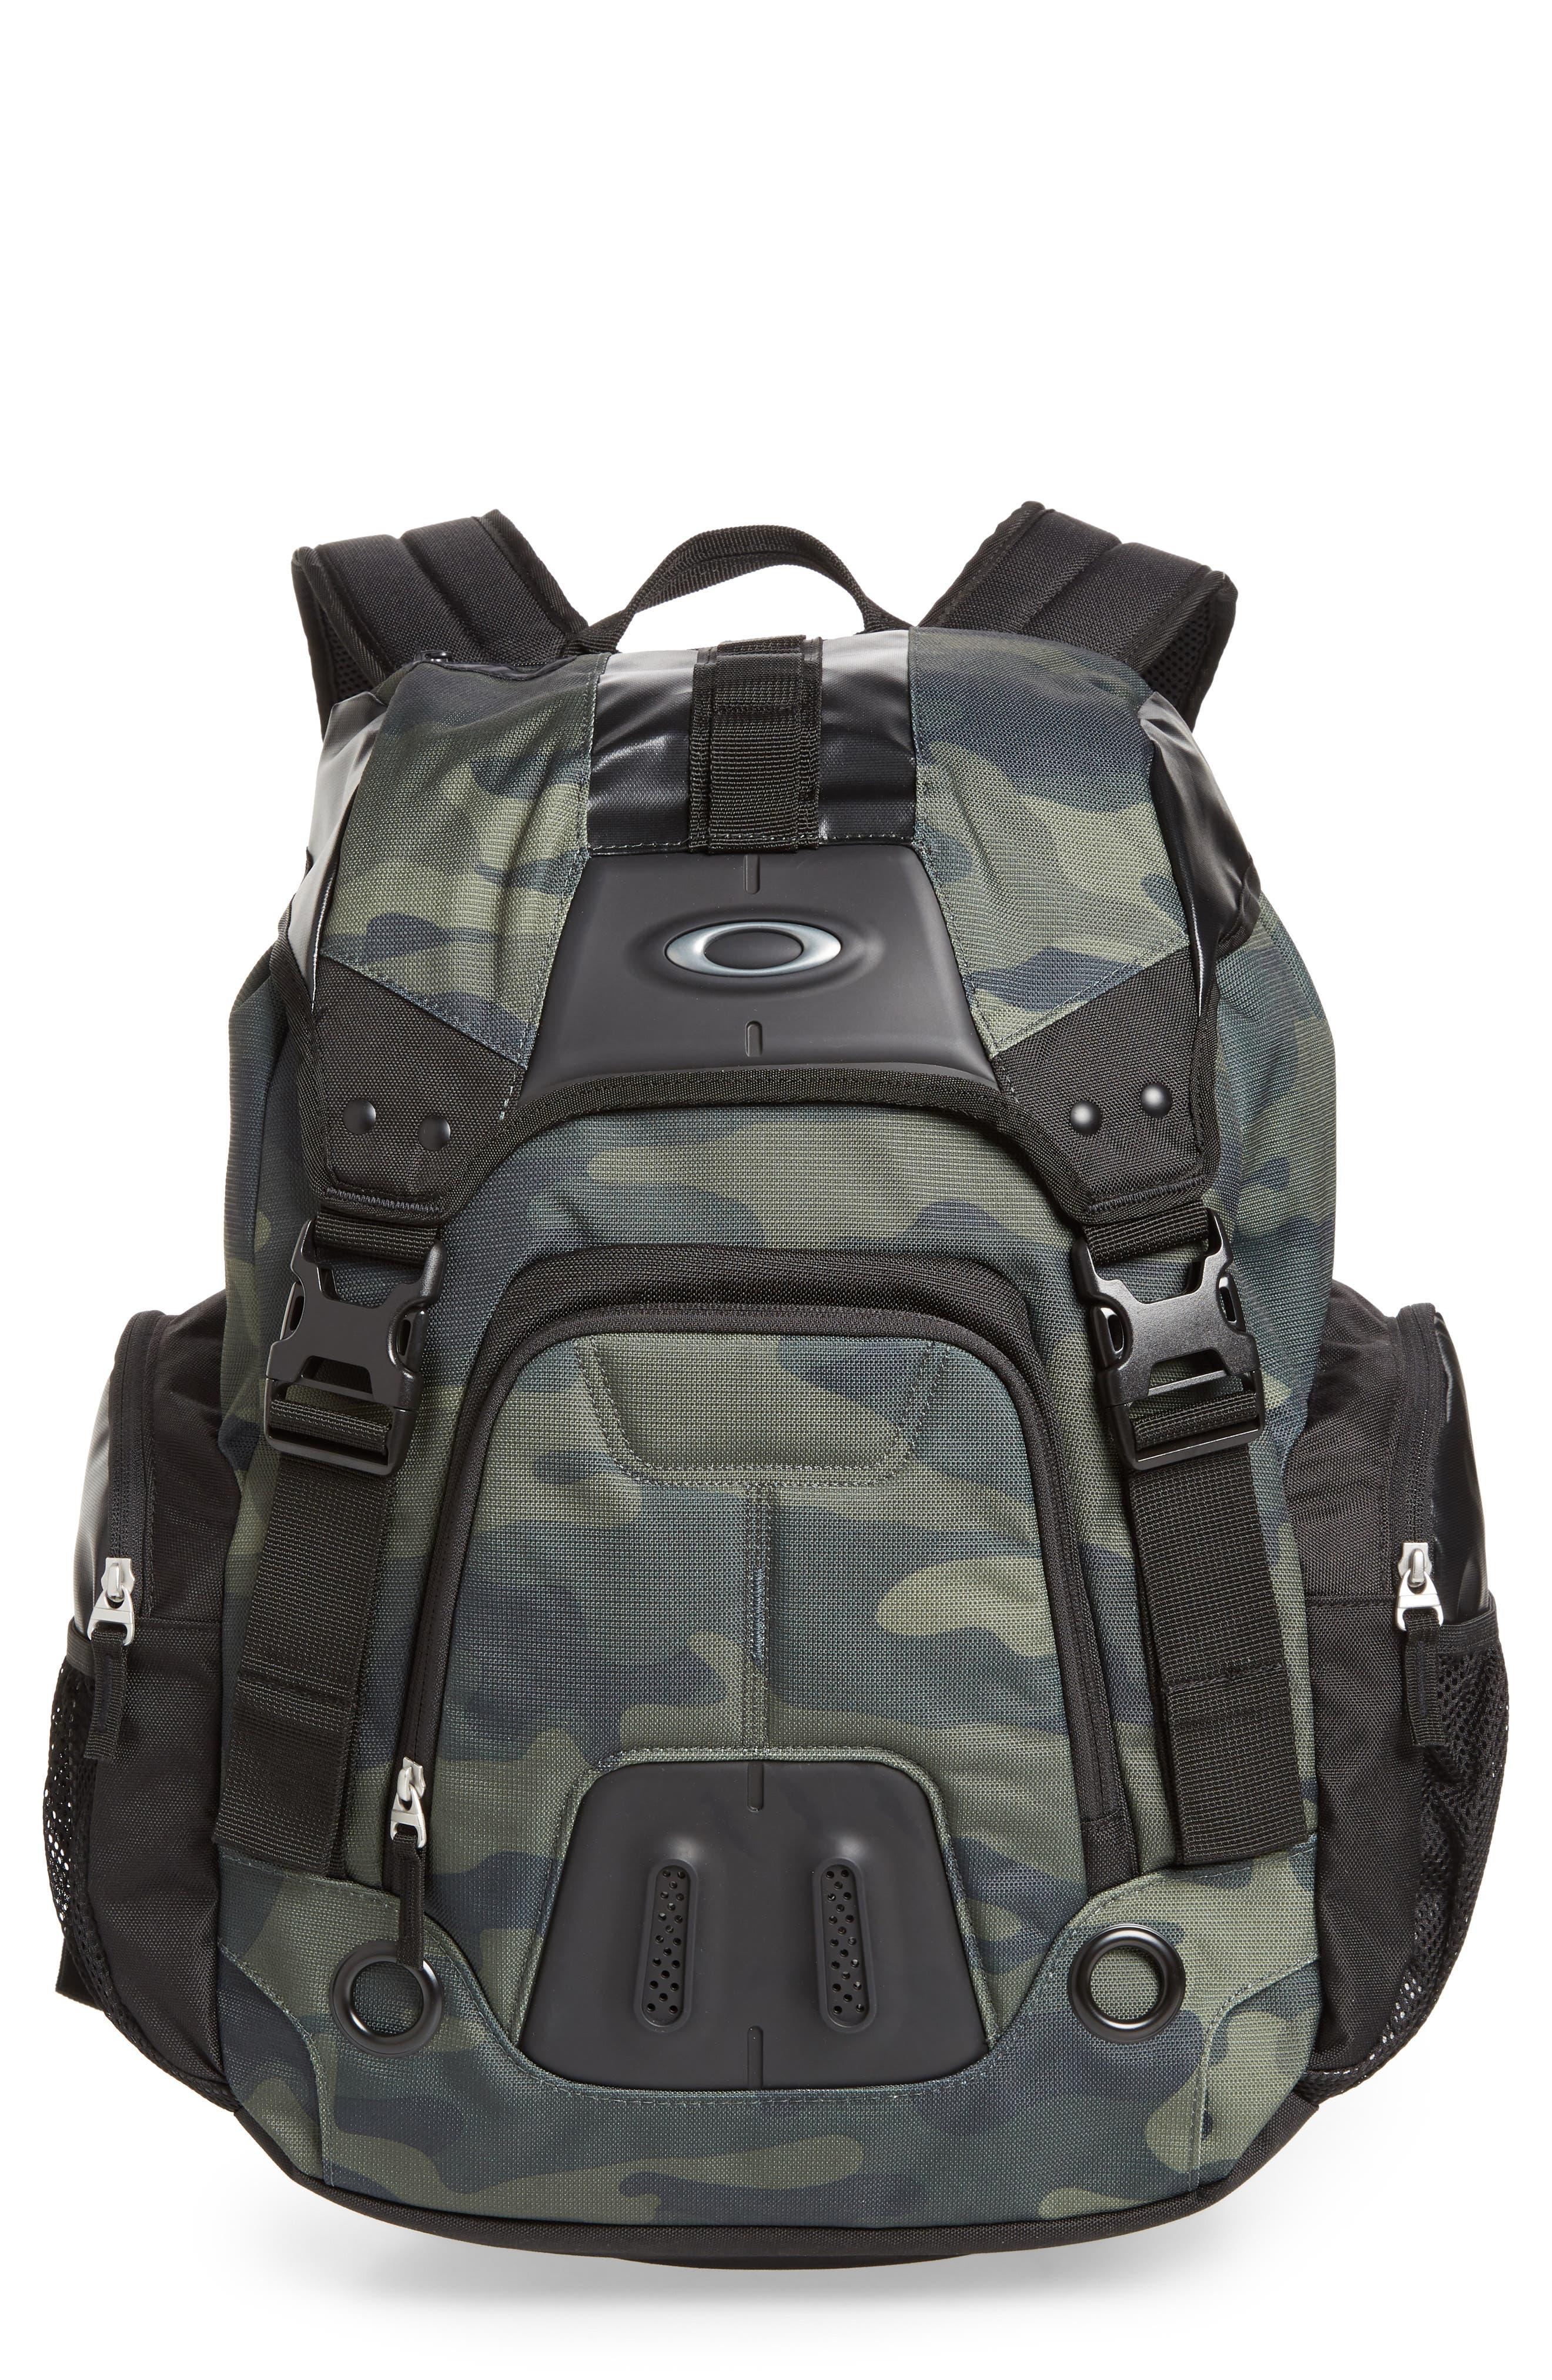 Gearbox LX Backpack